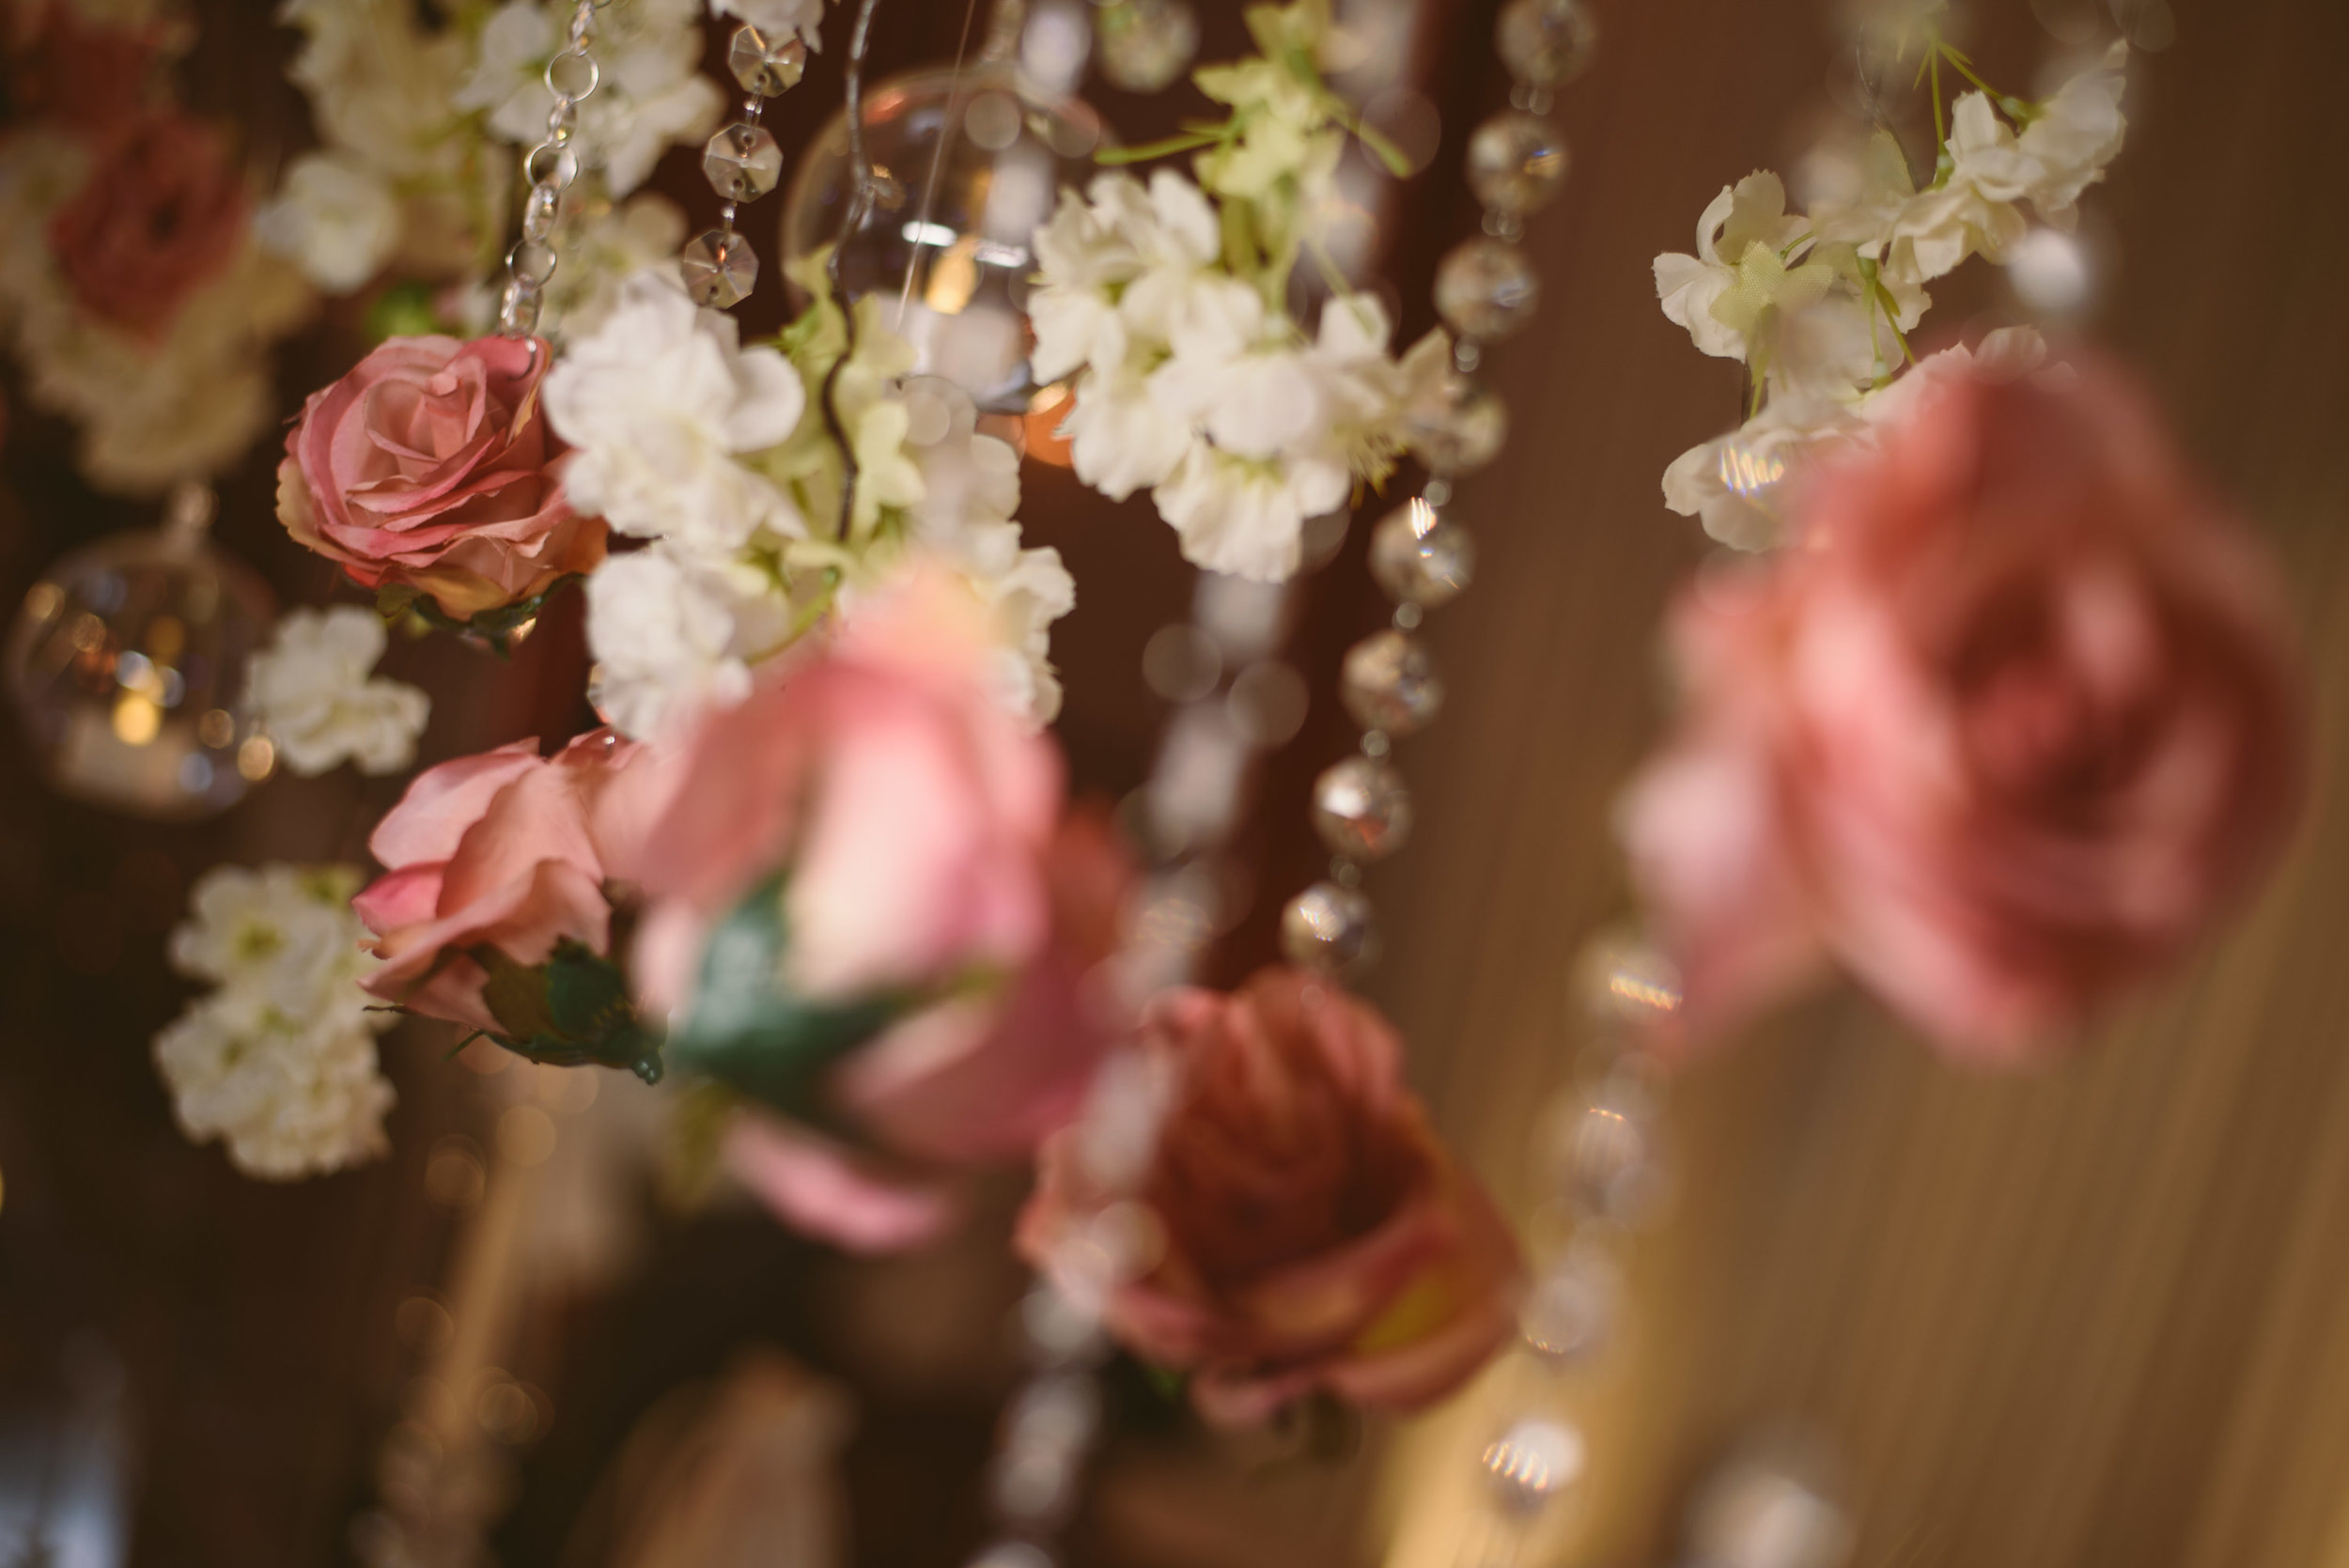 The Colour Palette - We tend to use accents in your chosen colour scheme as it's more impactful and creates an elegant look.The colour palette used a base of floral white with accents of blush pink and gold throughout the event, with pinspot lighting highlighting each and every piece.